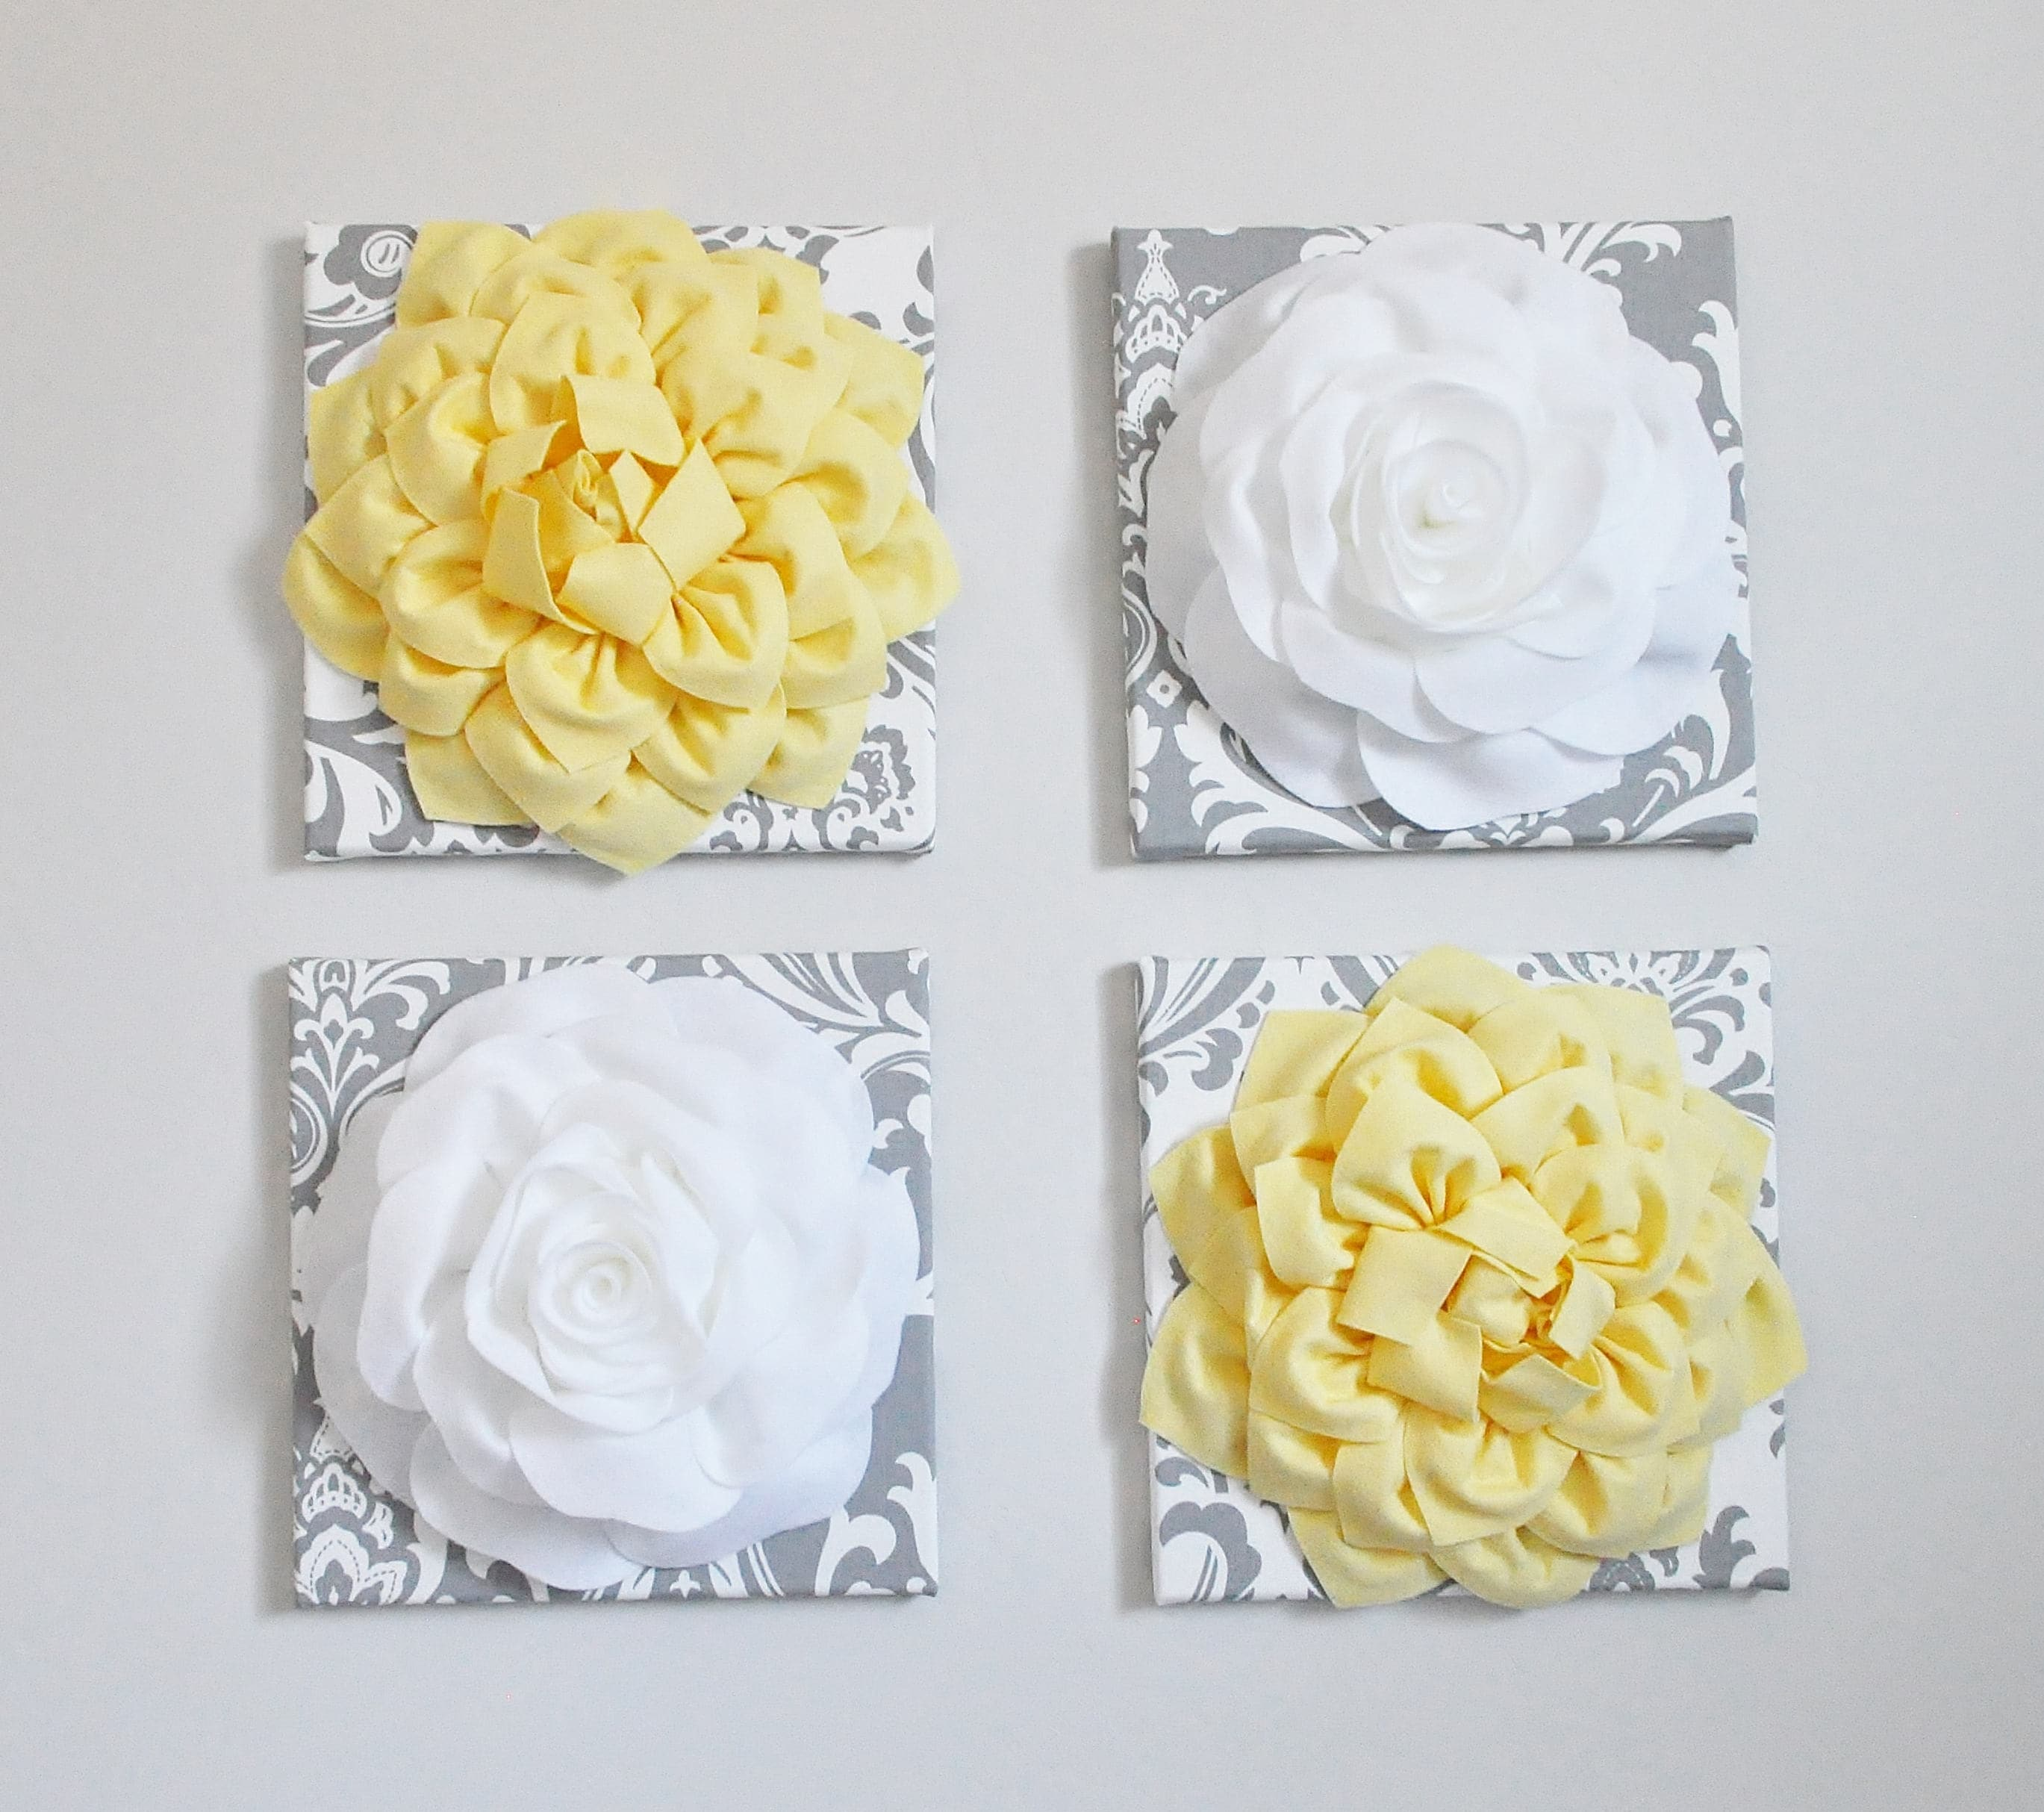 Large Master Bedroom Wall Art Decor Yellow Flower On Gray and